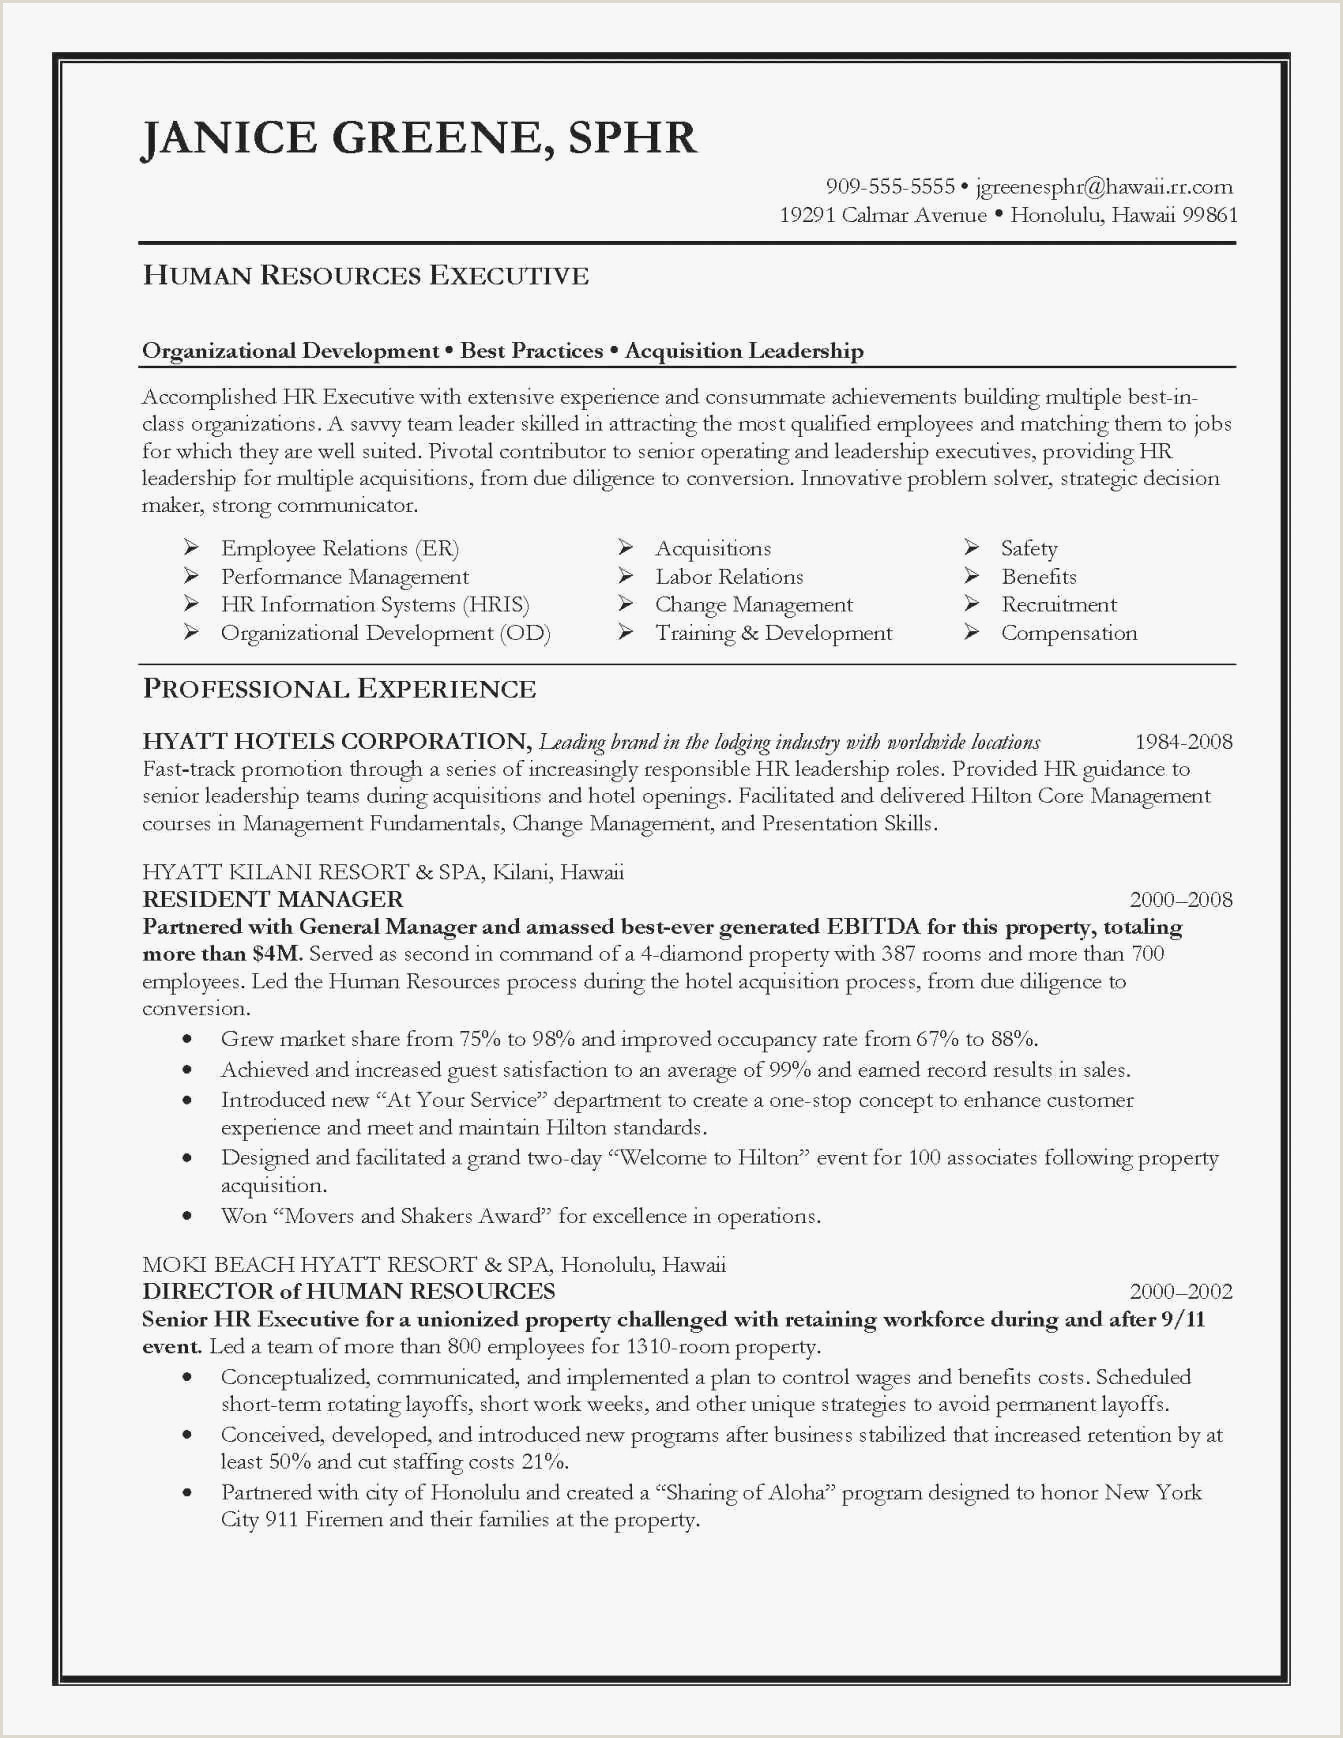 10 resume professional profile examples